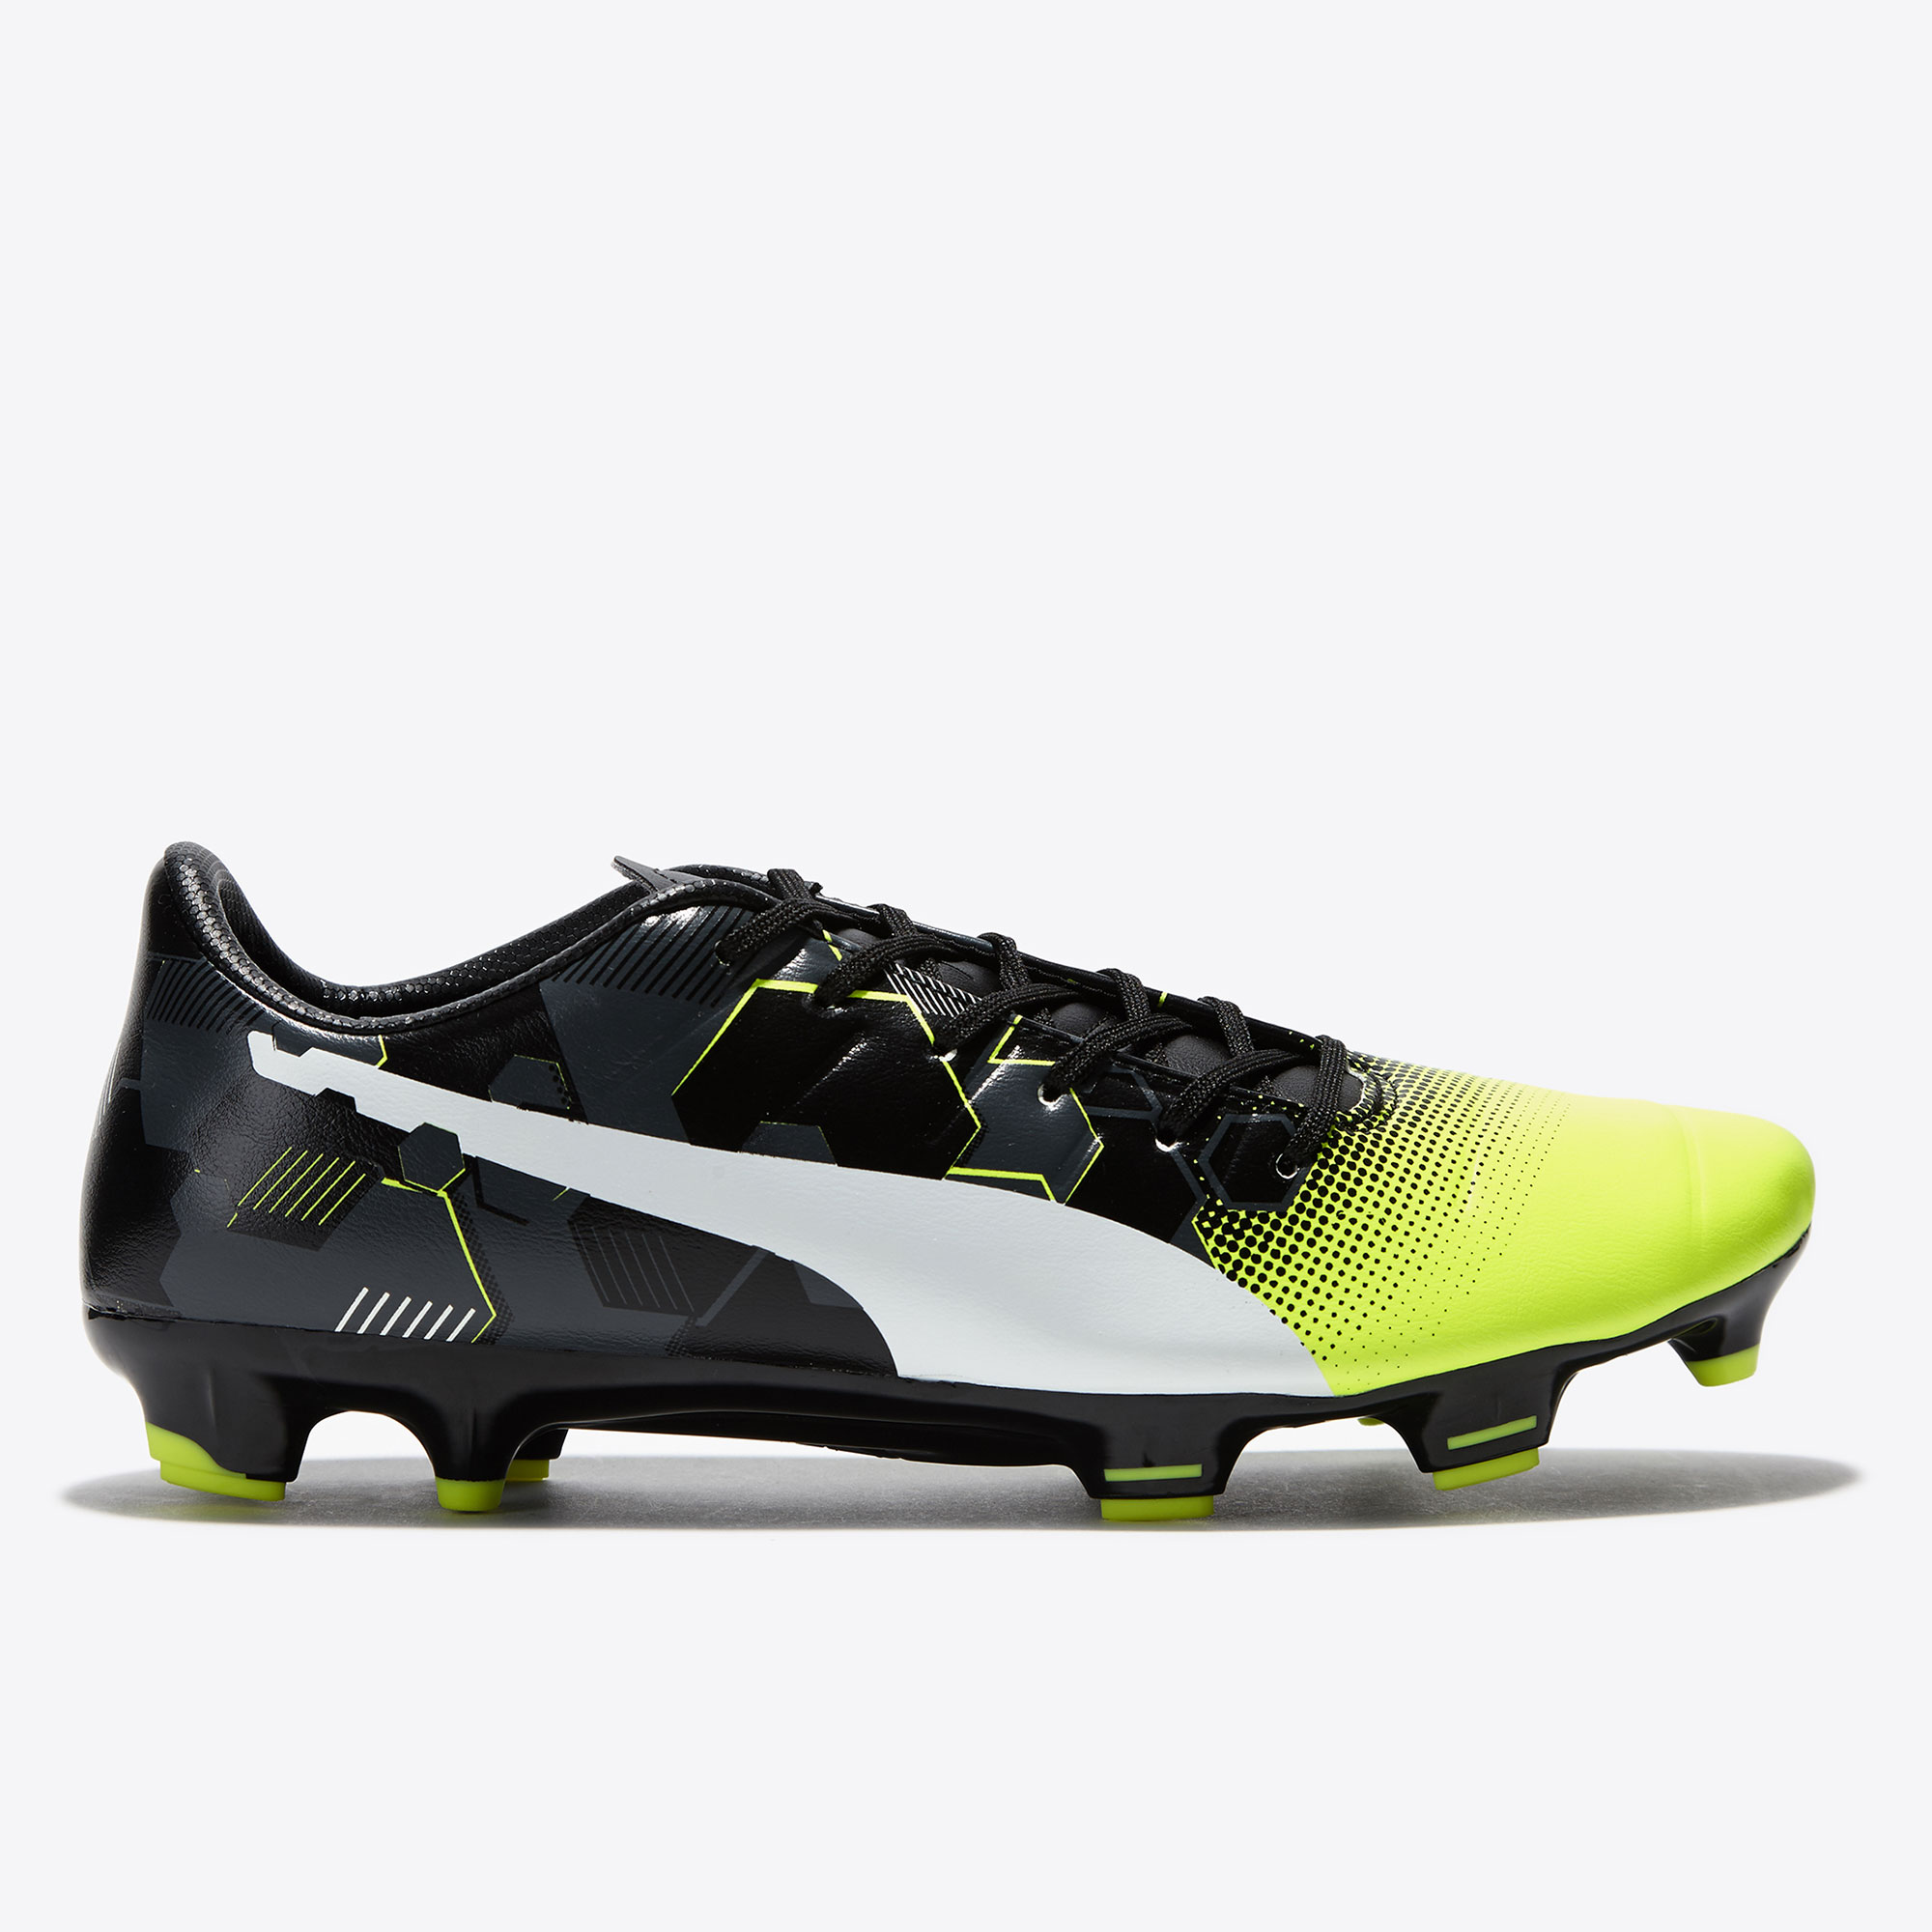 Puma evoPOWER 3.3 Graphic FG Safety Yellow/W